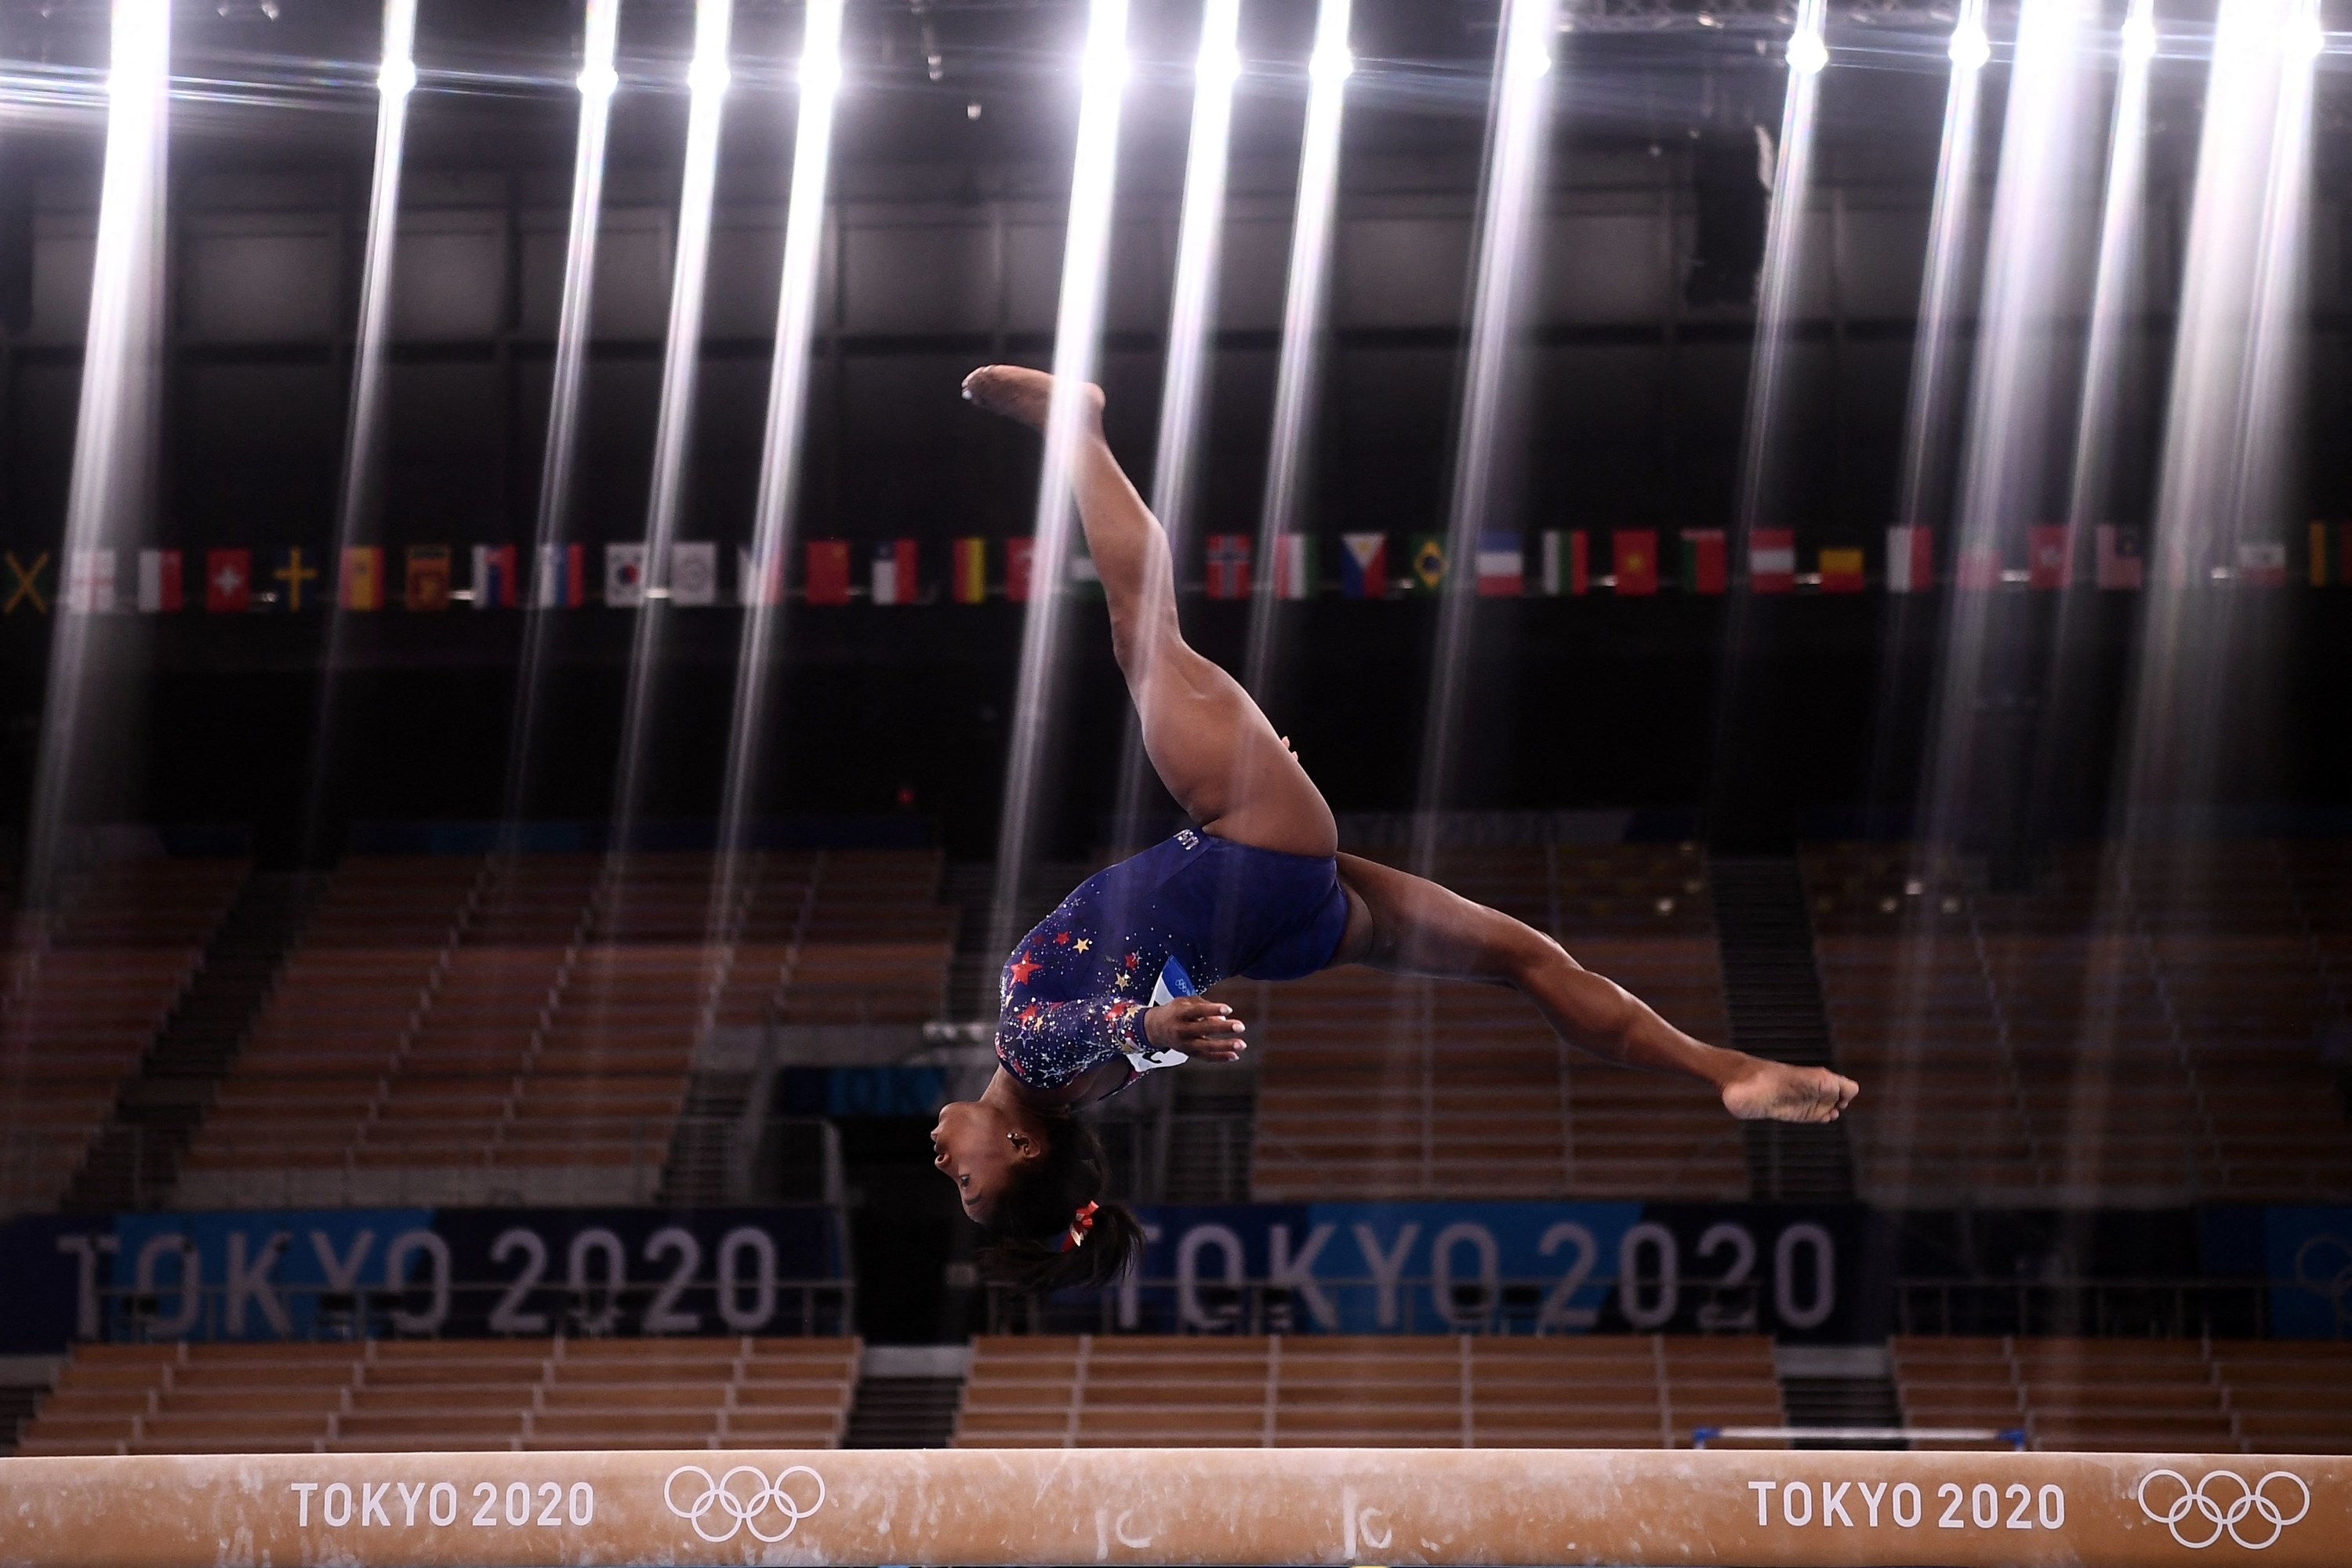 The overhead lights in the arena shining down as Simone flips over the balance beam